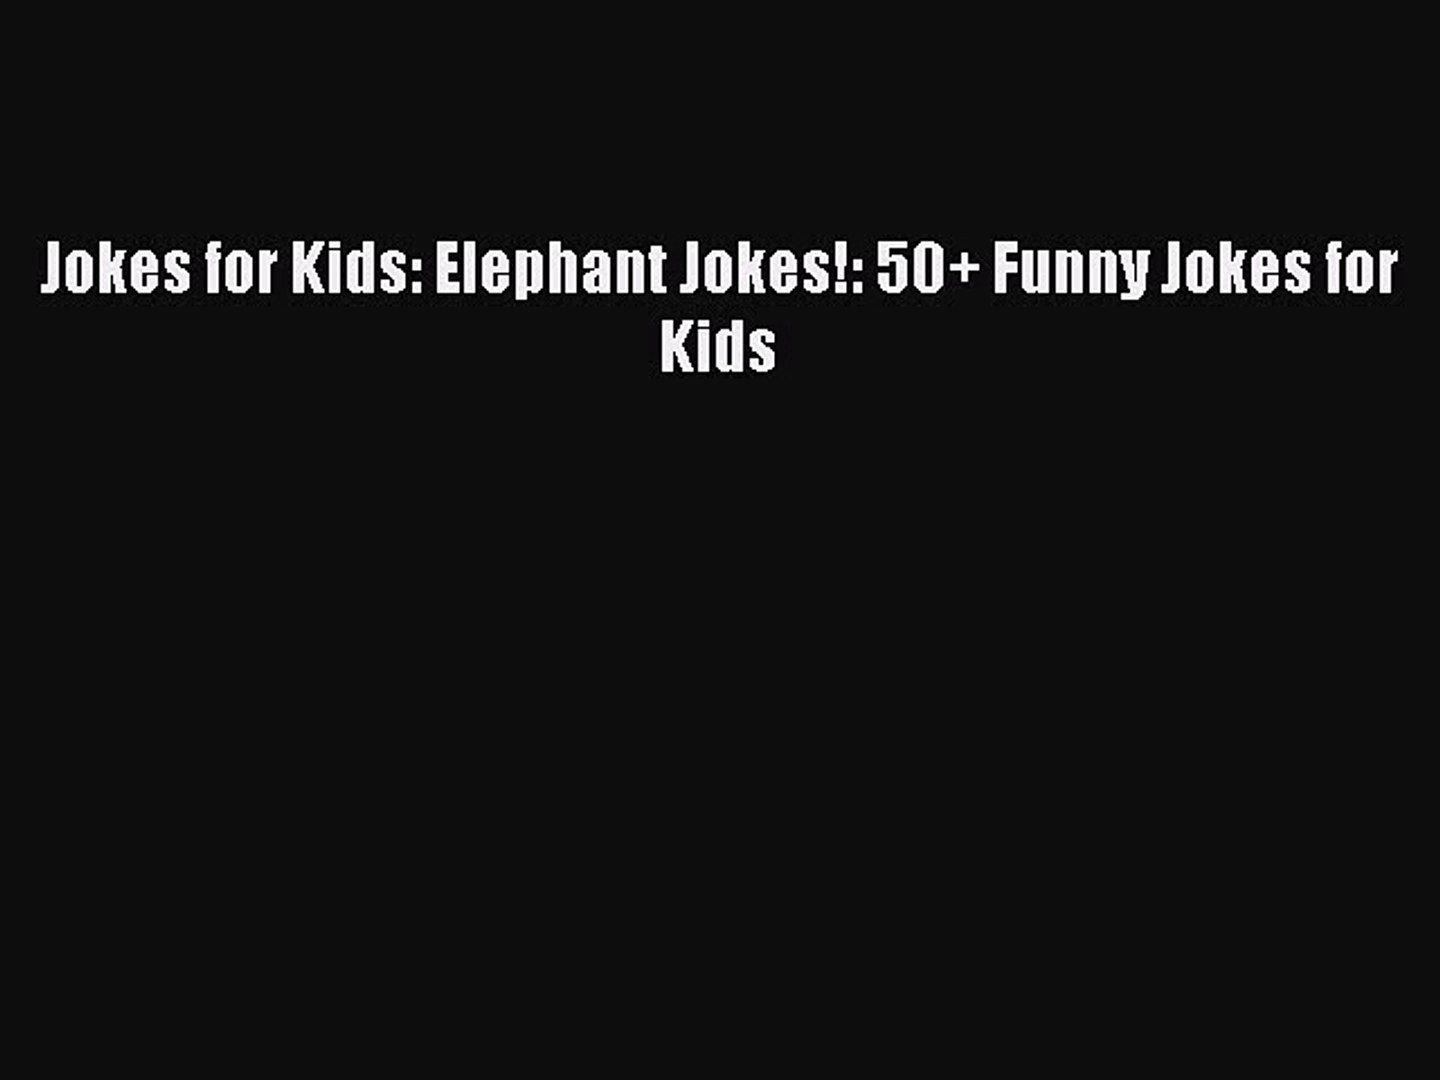 Jokes for Kids: Elephant Jokes!: 50+ Funny Jokes for Kids  Free Books